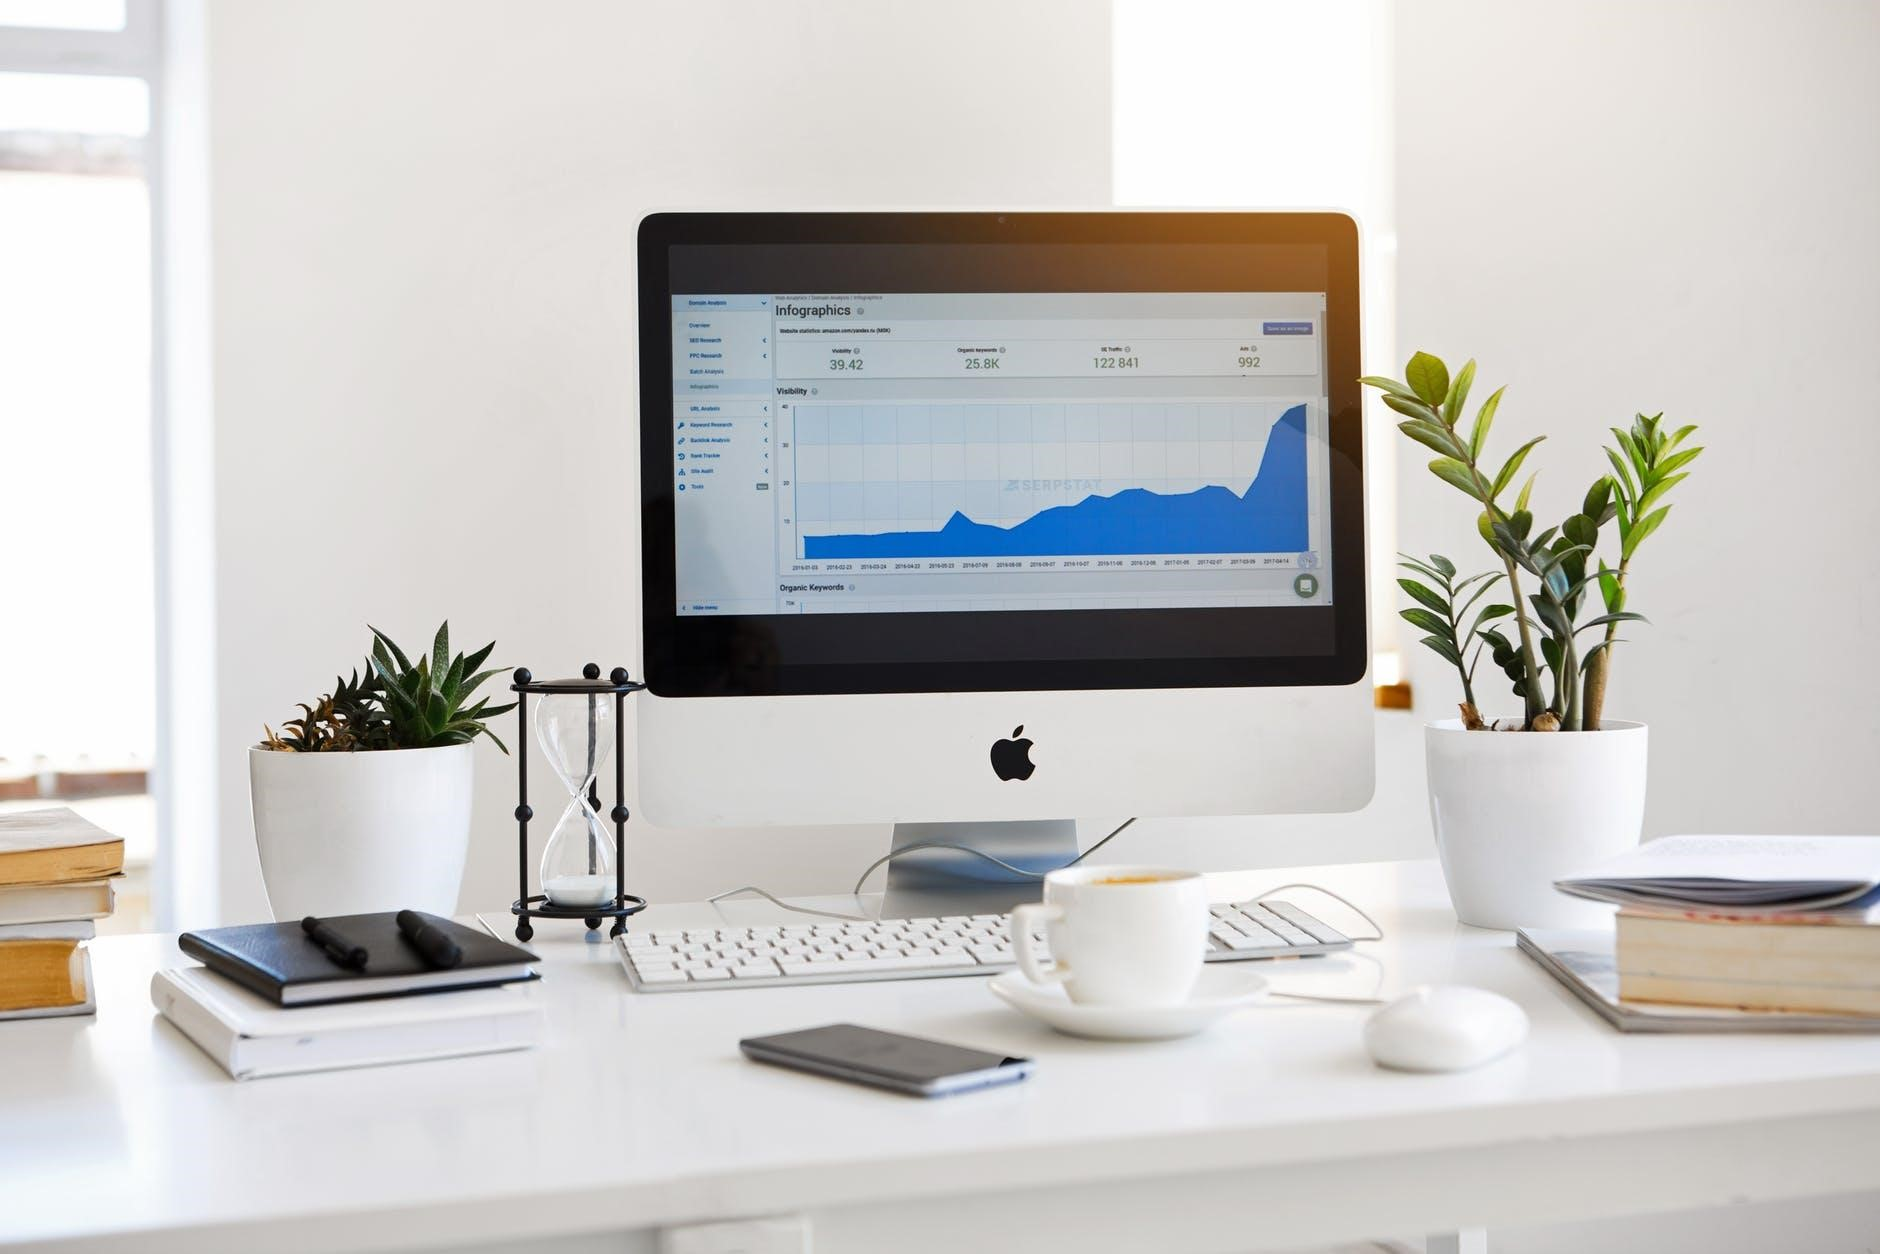 5 Ideal Ways for Small Businesses to Gain More Attention